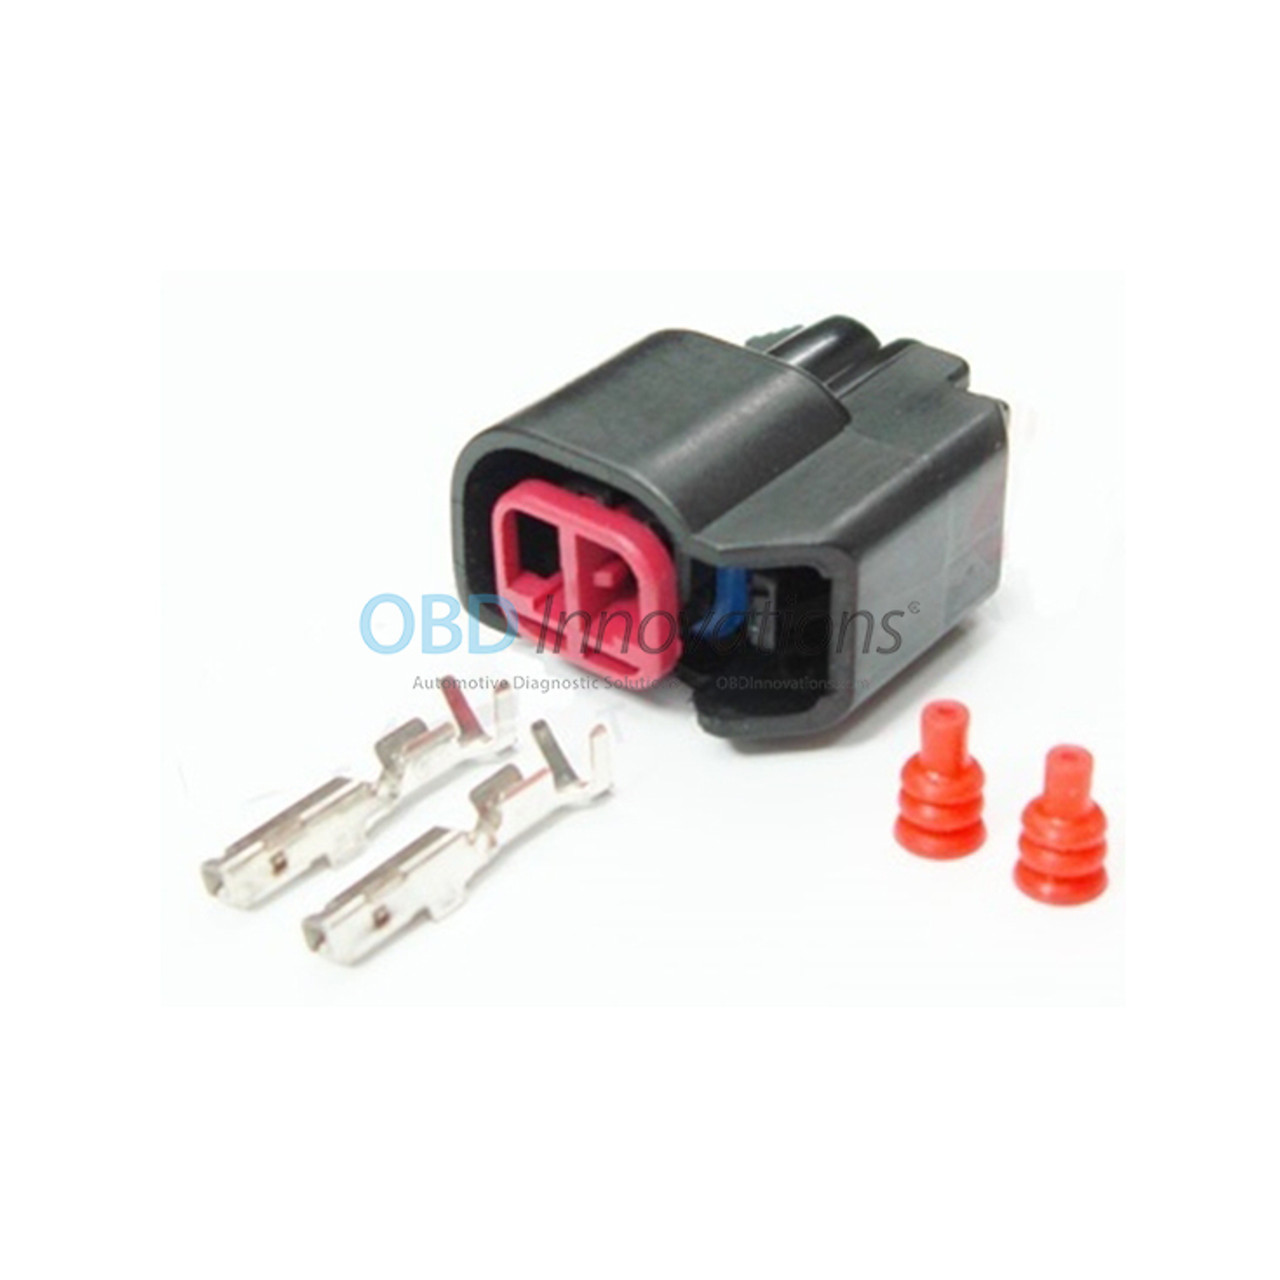 EV6 Female Fuel Injector Connector With Crimp-on Pins